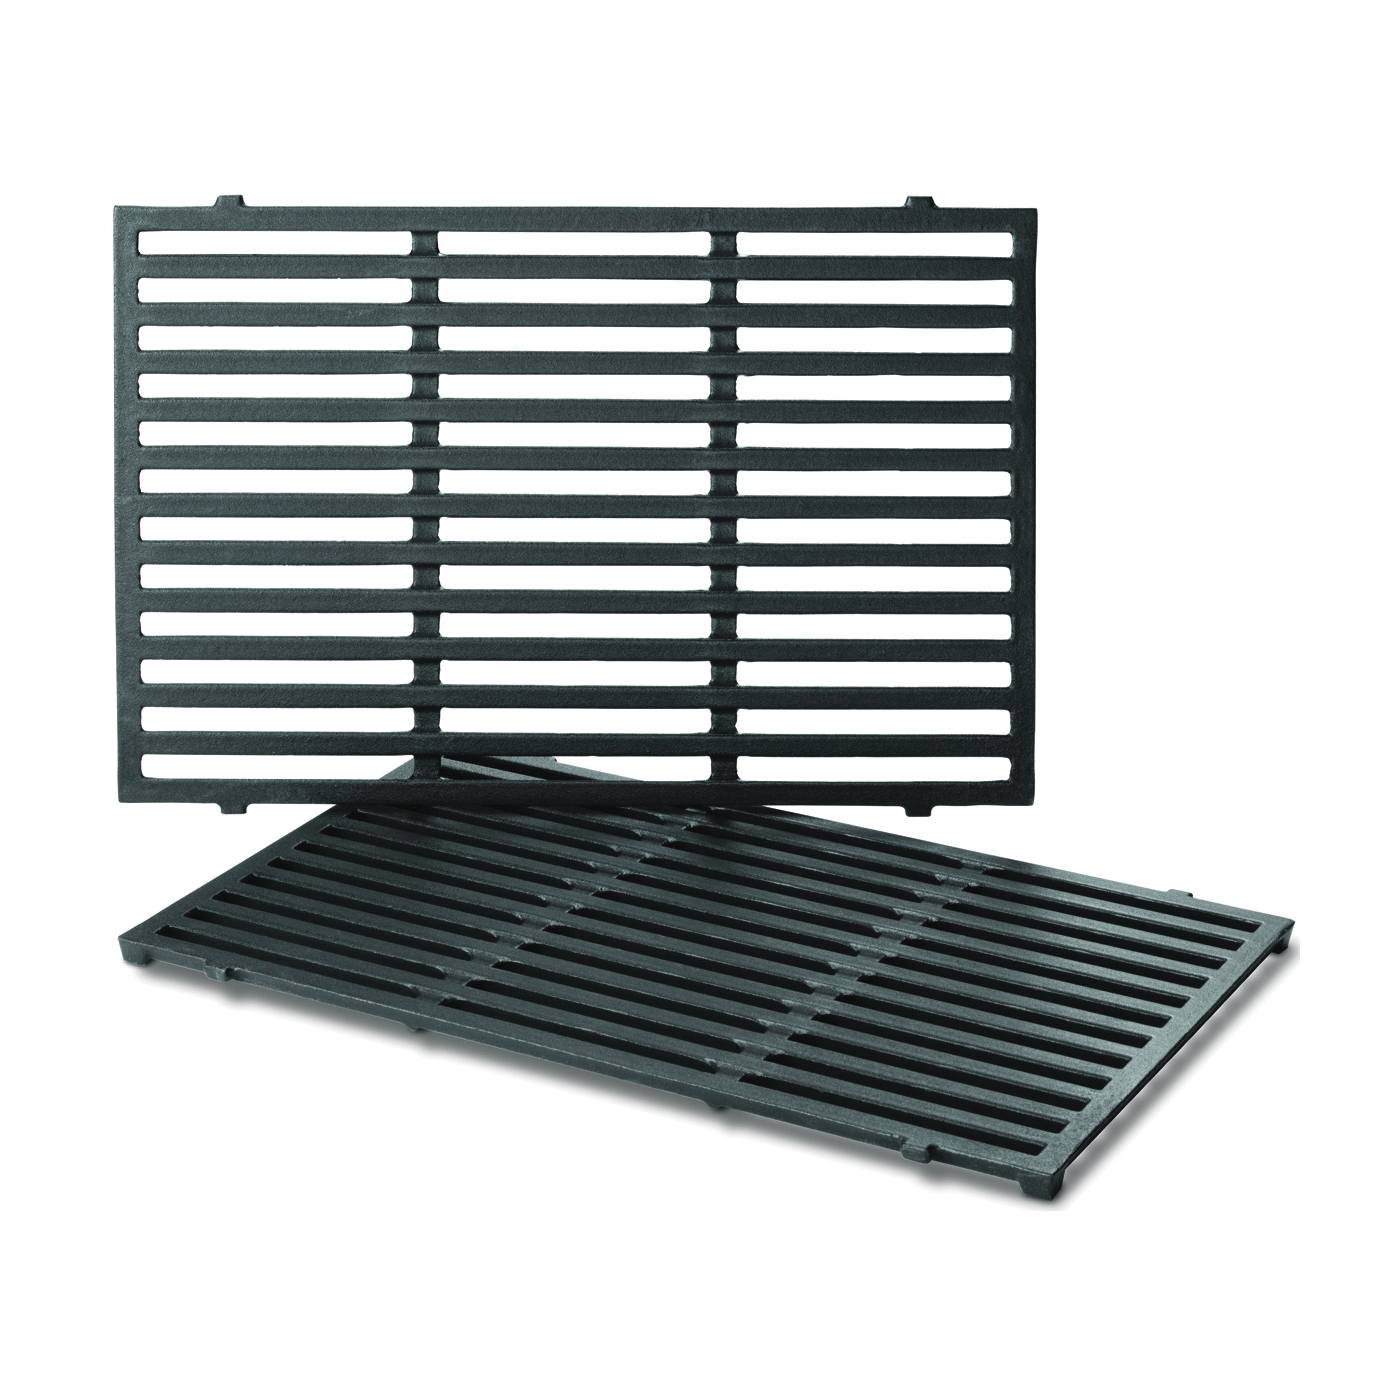 Picture of Weber 7638 Cooking Grate, 17-1/2 in L, 11-29/32 in W, Cast Iron, Enamel-Coated